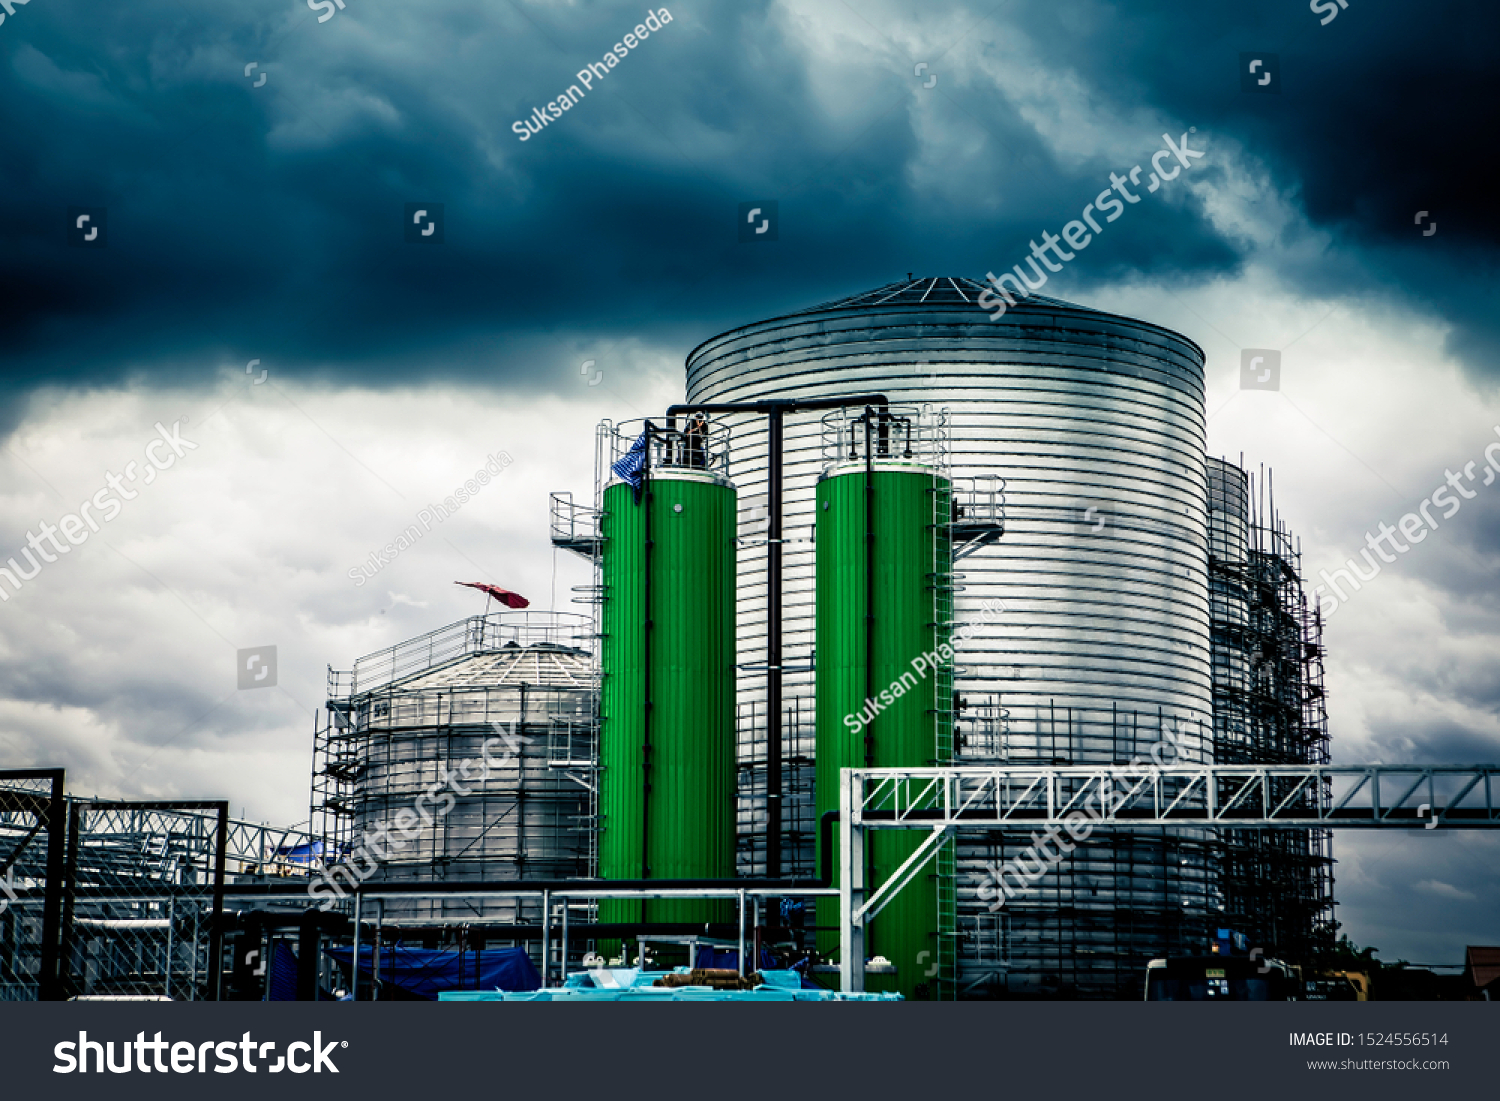 Build oil tanks, industrial chemicals and rain storms are coming. #1524556514